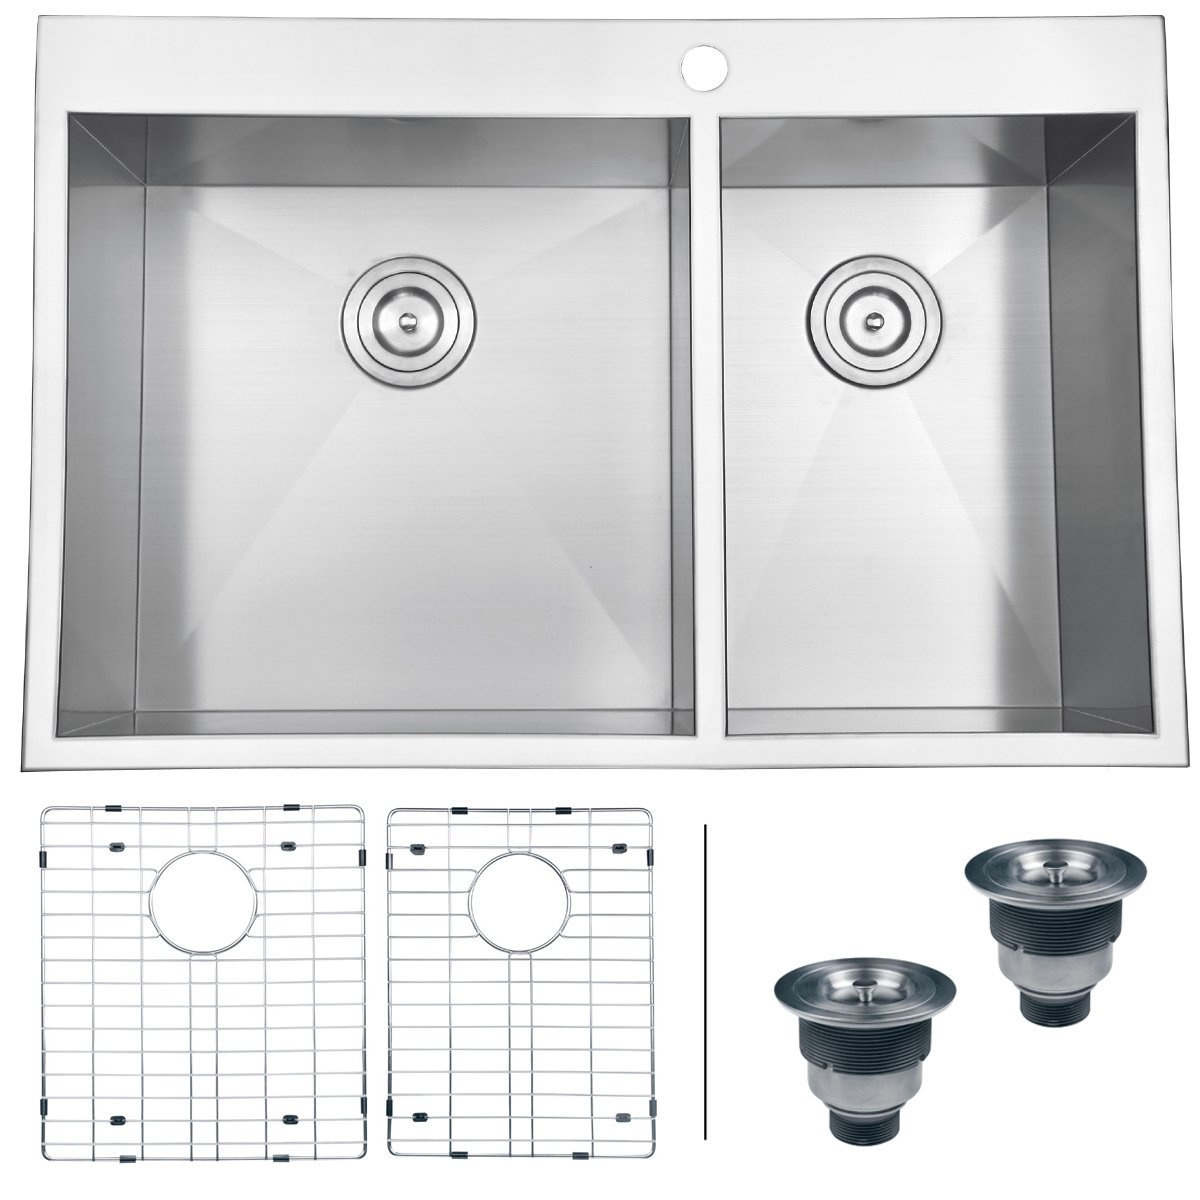 Best Gauge For Kitchen Sink Uncle pauls best stainless steel sinks 2018 and his top 5 choices ruvati rvh8050 drop in overmount 16 gauge double bowl kitchen sink workwithnaturefo